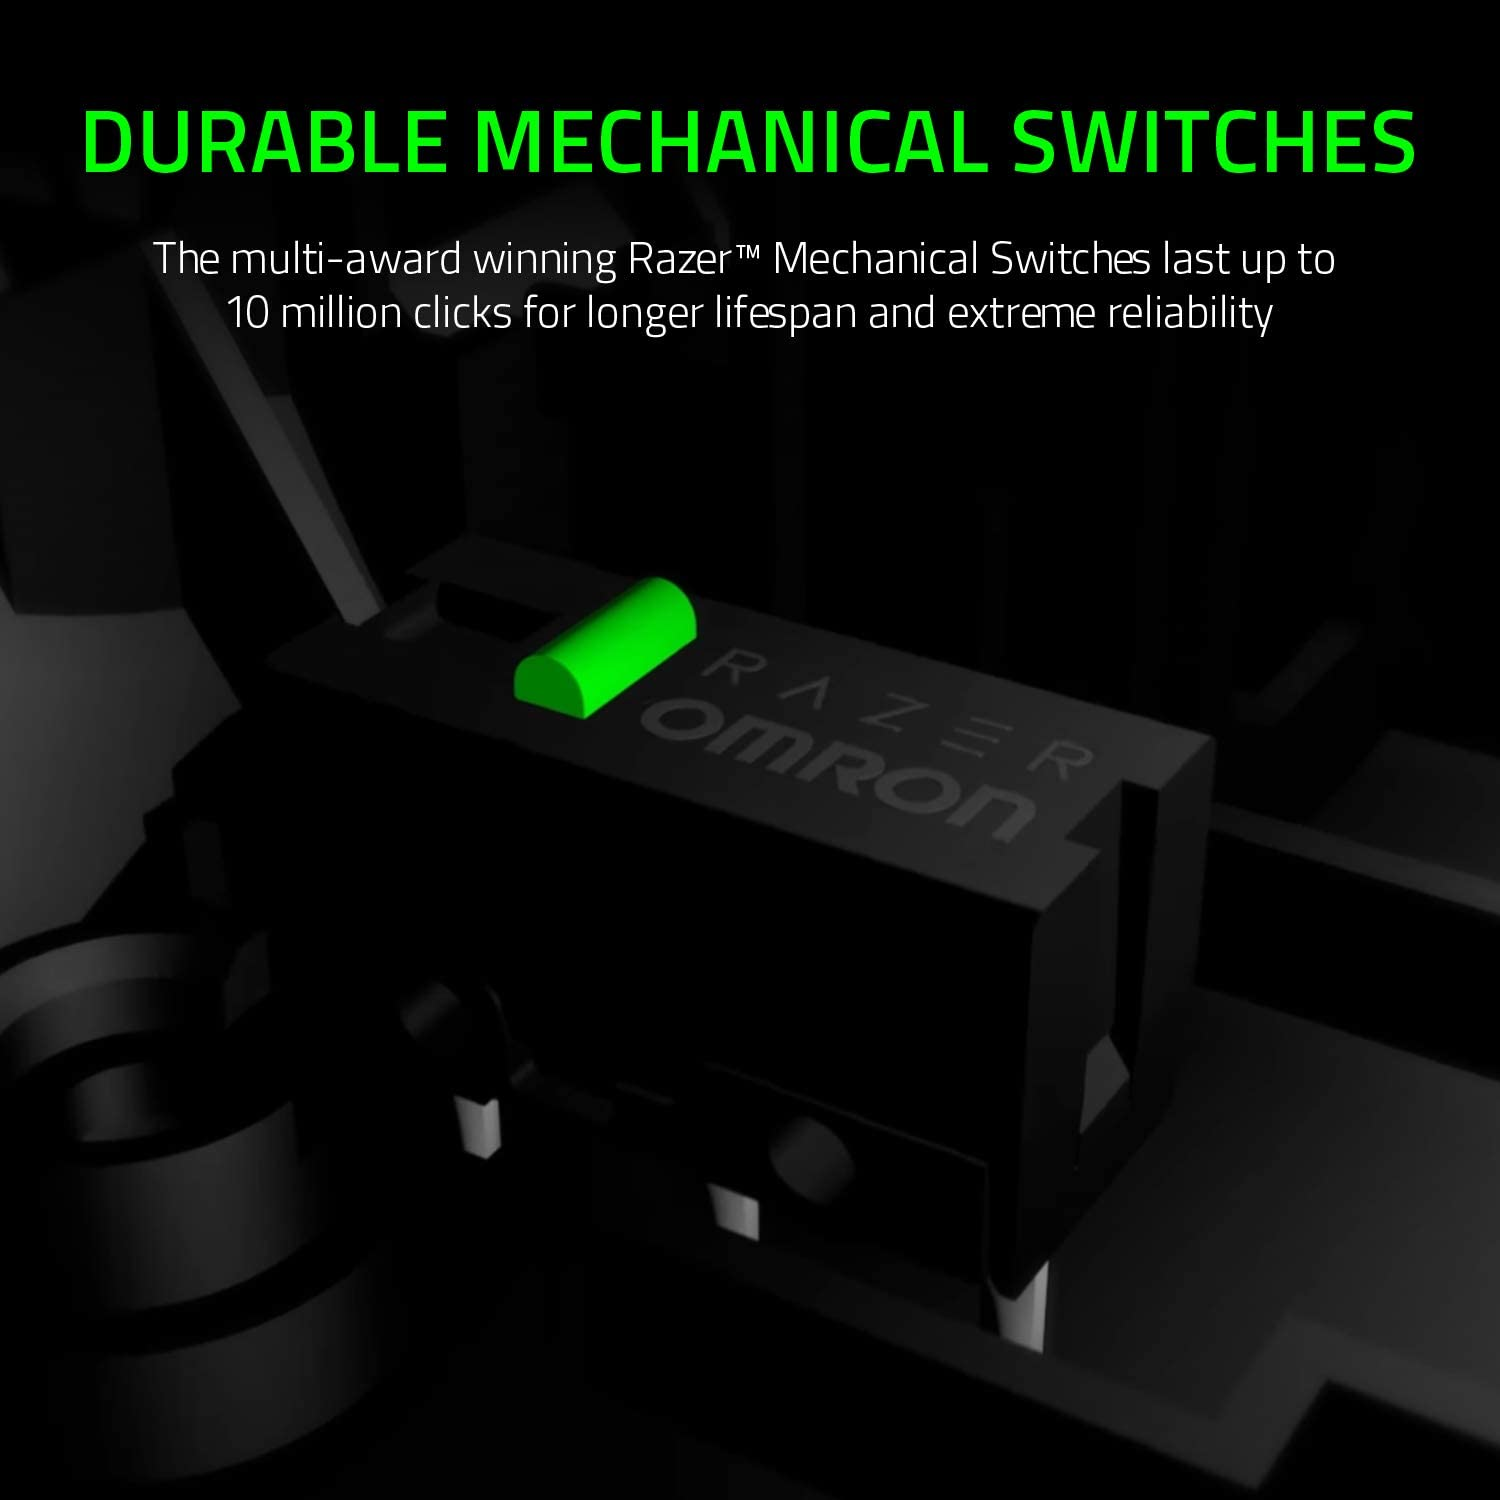 Razer DeathAdder Essential Wired Gaming Mouse DURABLE MECHANICAL SWITCHES